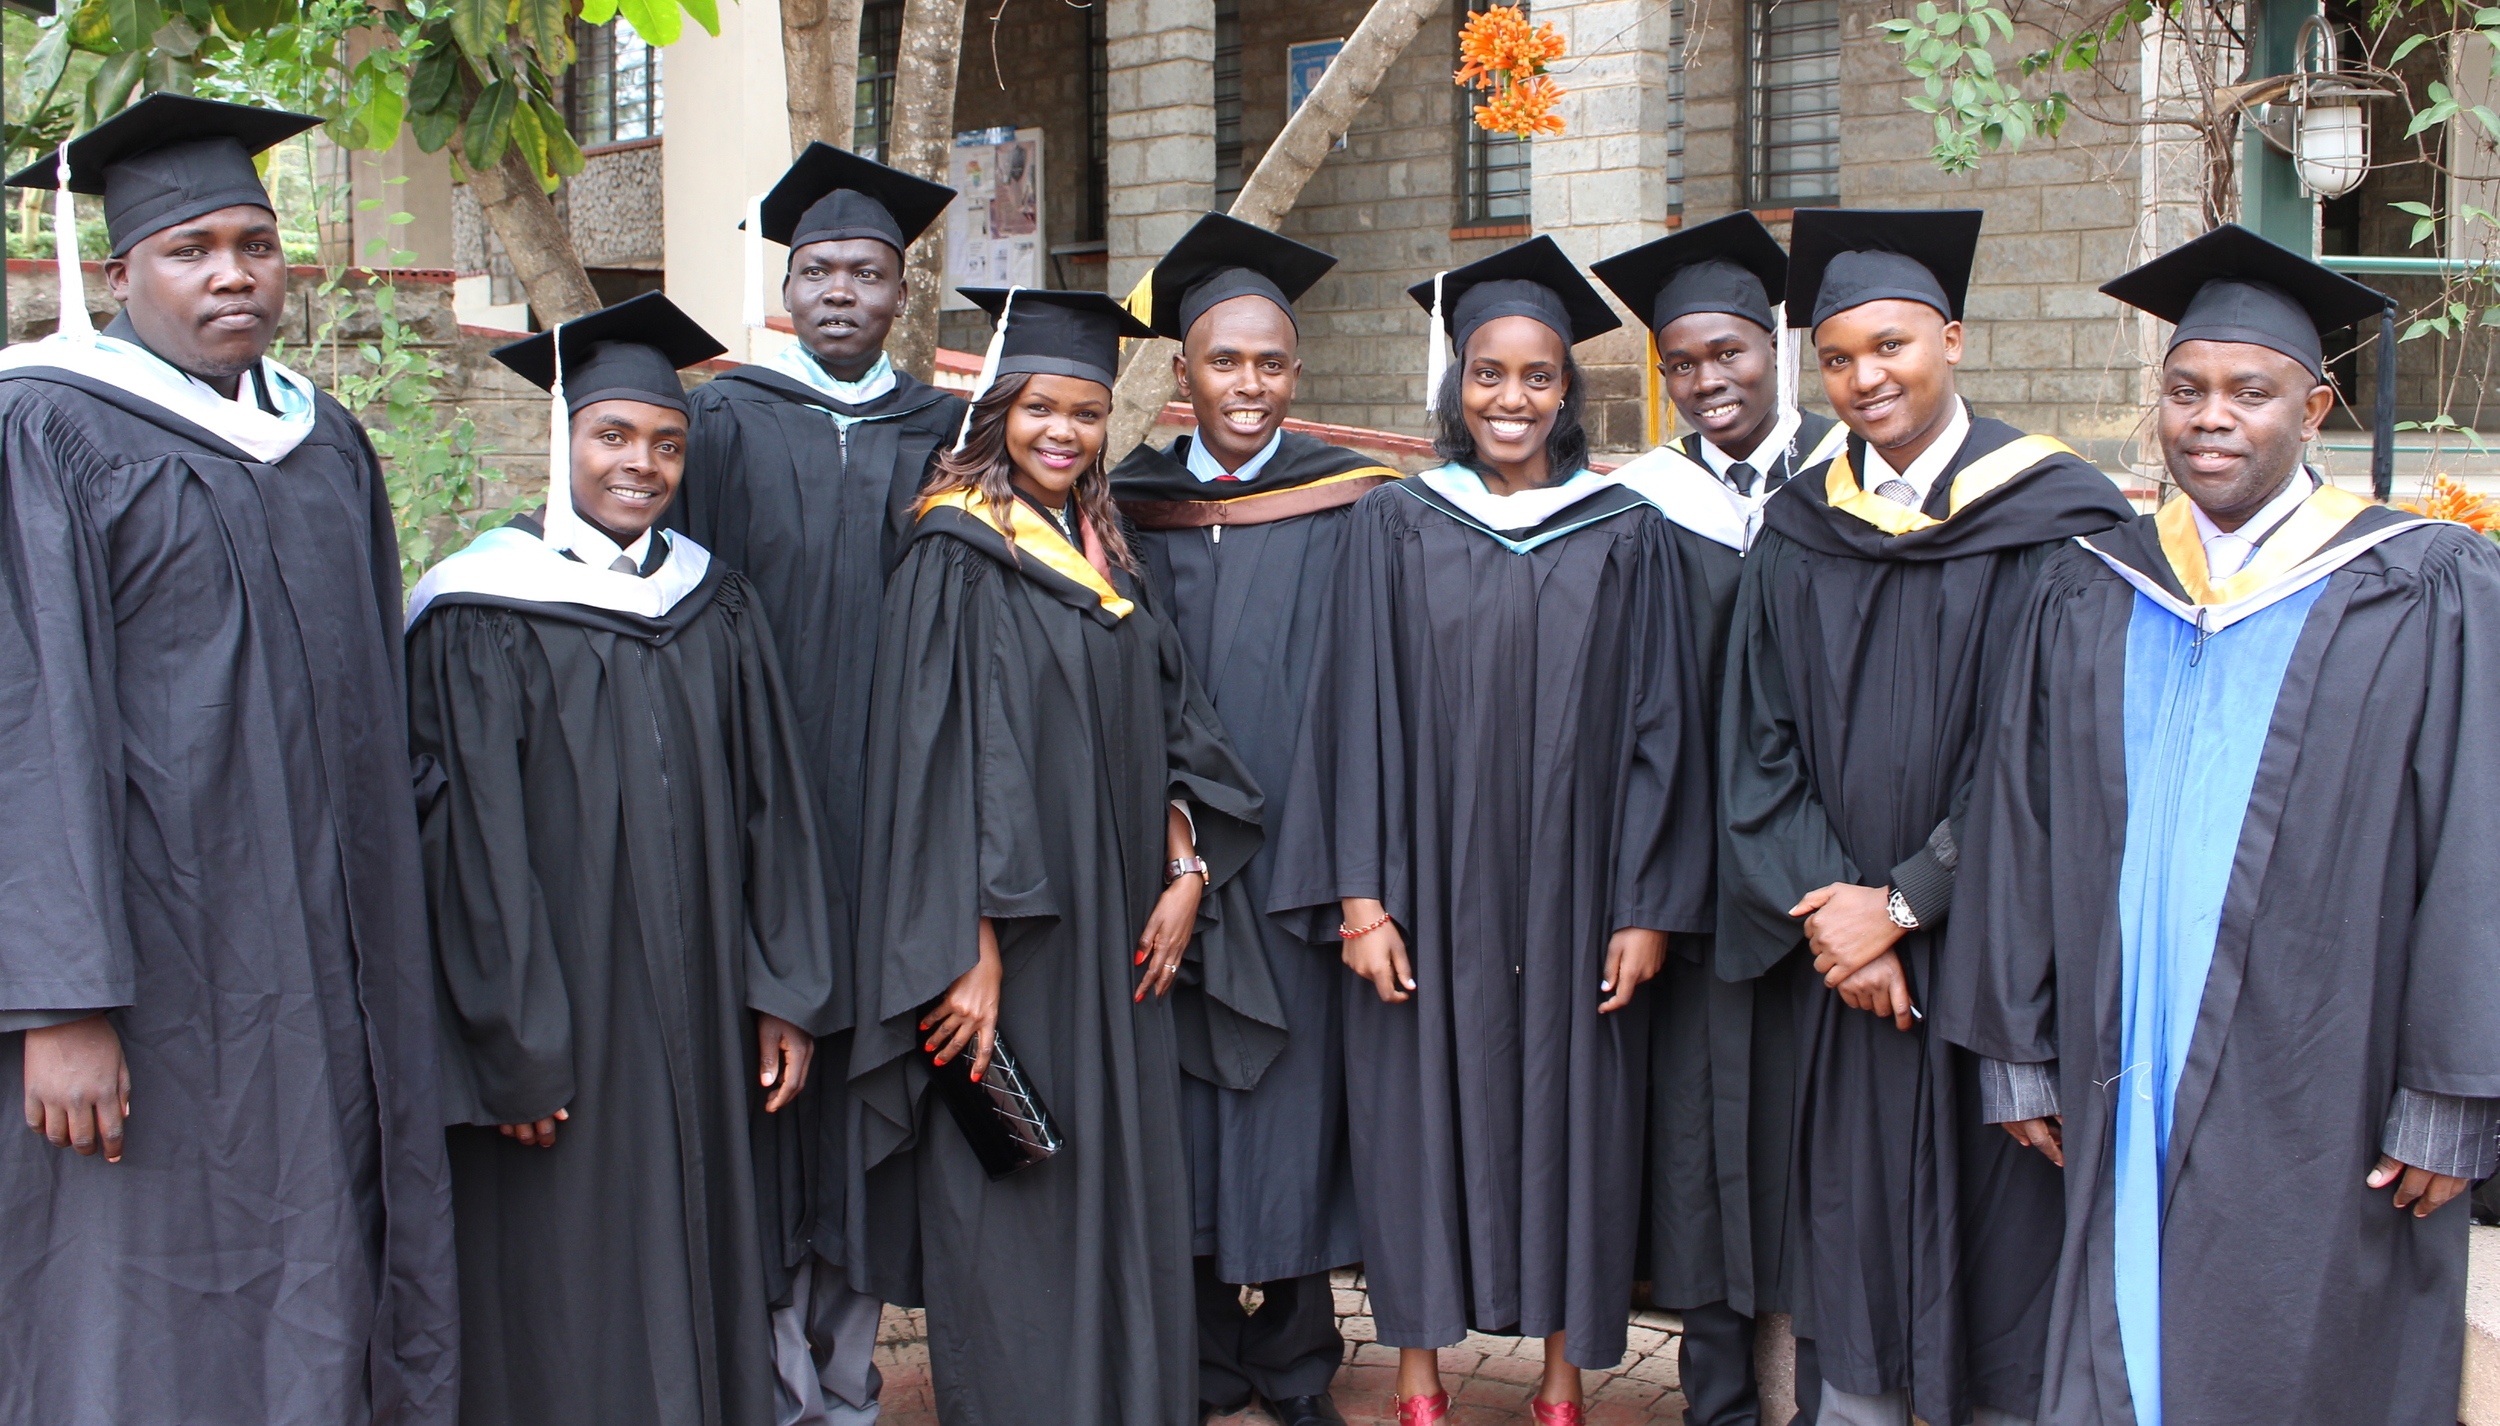 These are some of the 24 Daystar U.S. Scholarship Students that graduated this June.